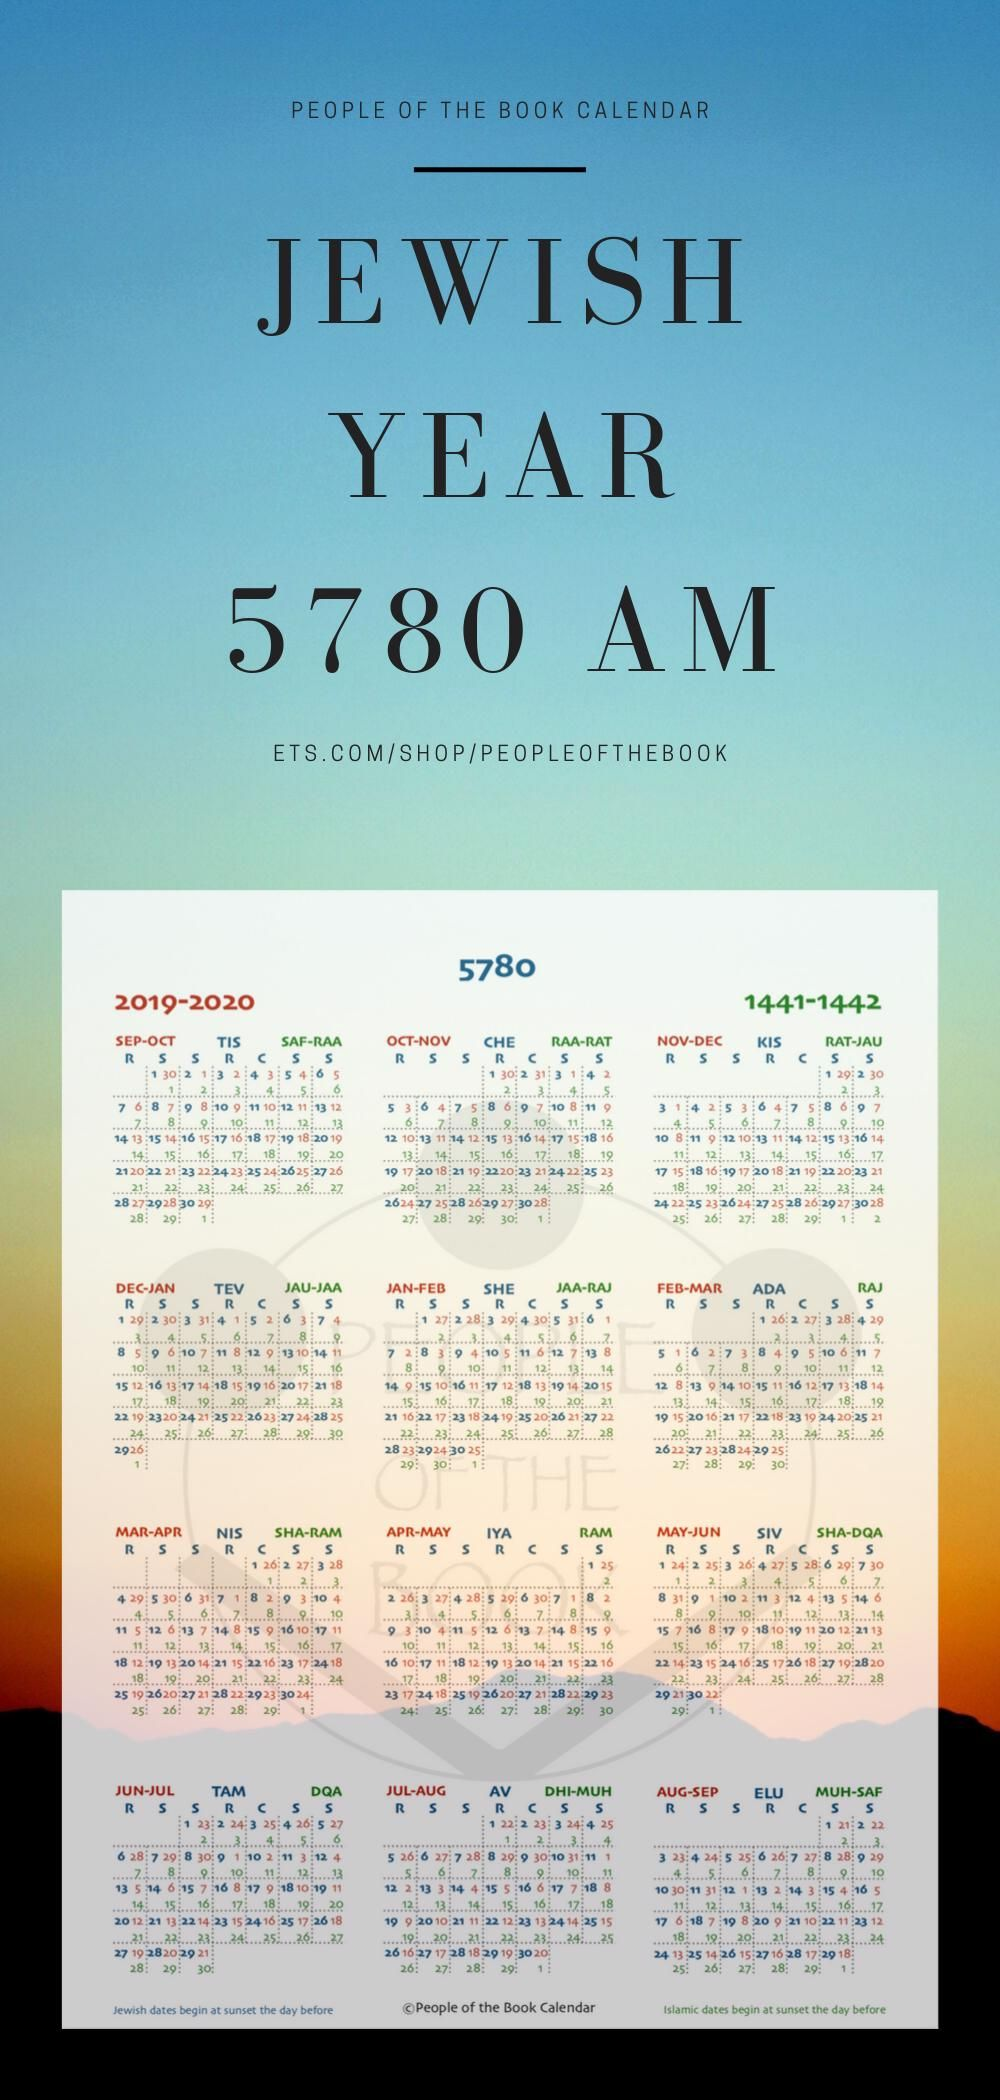 The Jewish Year 5780 Am Starts On 30 September 2019 1 Tishrei The People Of The Book Calendar Has Published A In 2020 Jewish Year Christian Calendar Positive Quotes